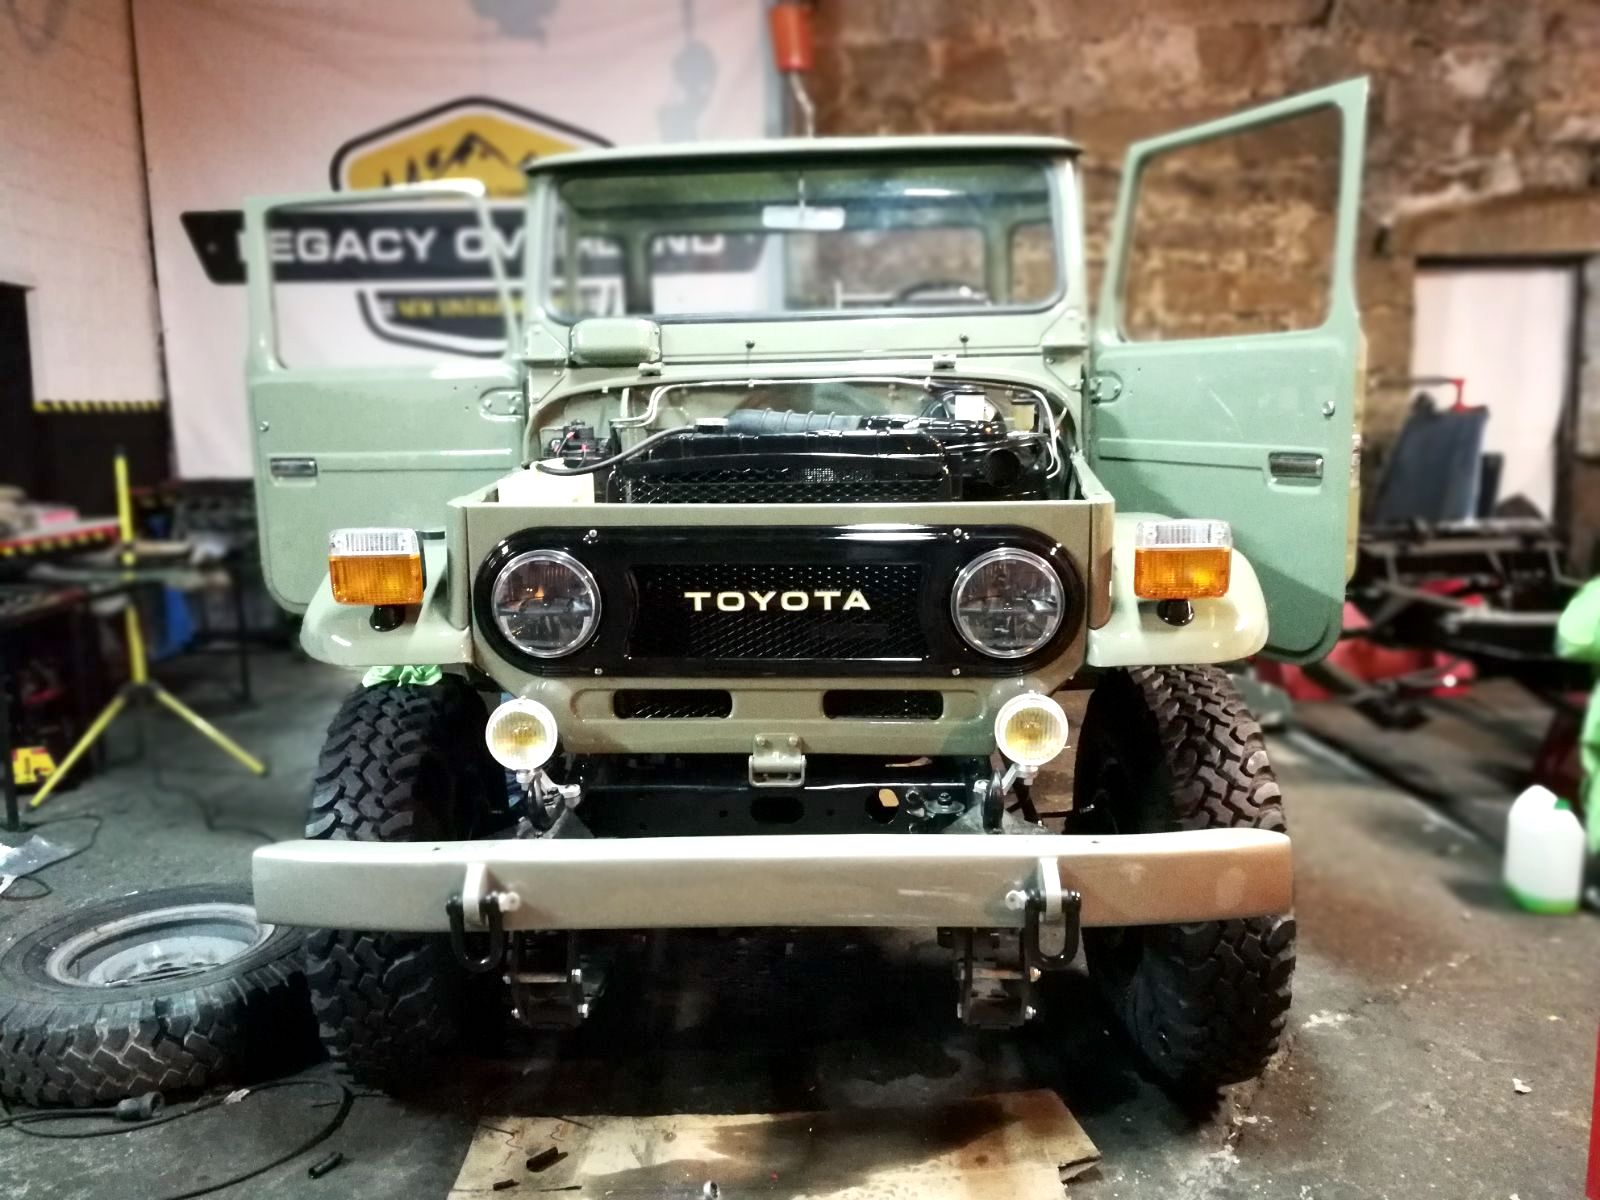 LegacyOverland_1978_ToyotaLandCruiser_HJ45_pick-up_buildphotos_14.JPG